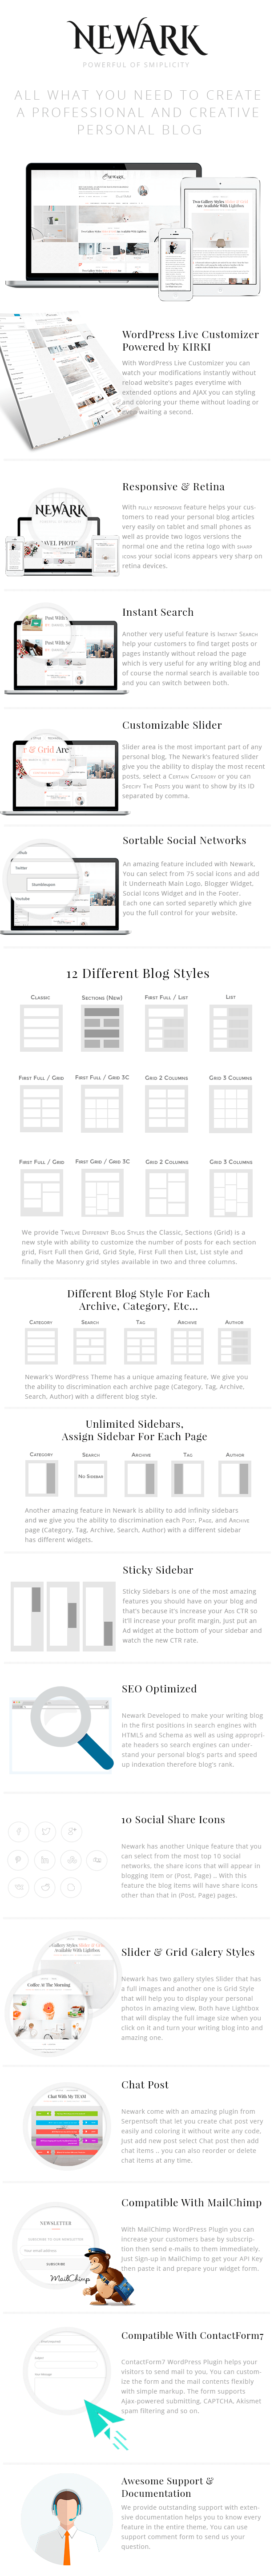 Newark Writing and Blogging WordPress Theme